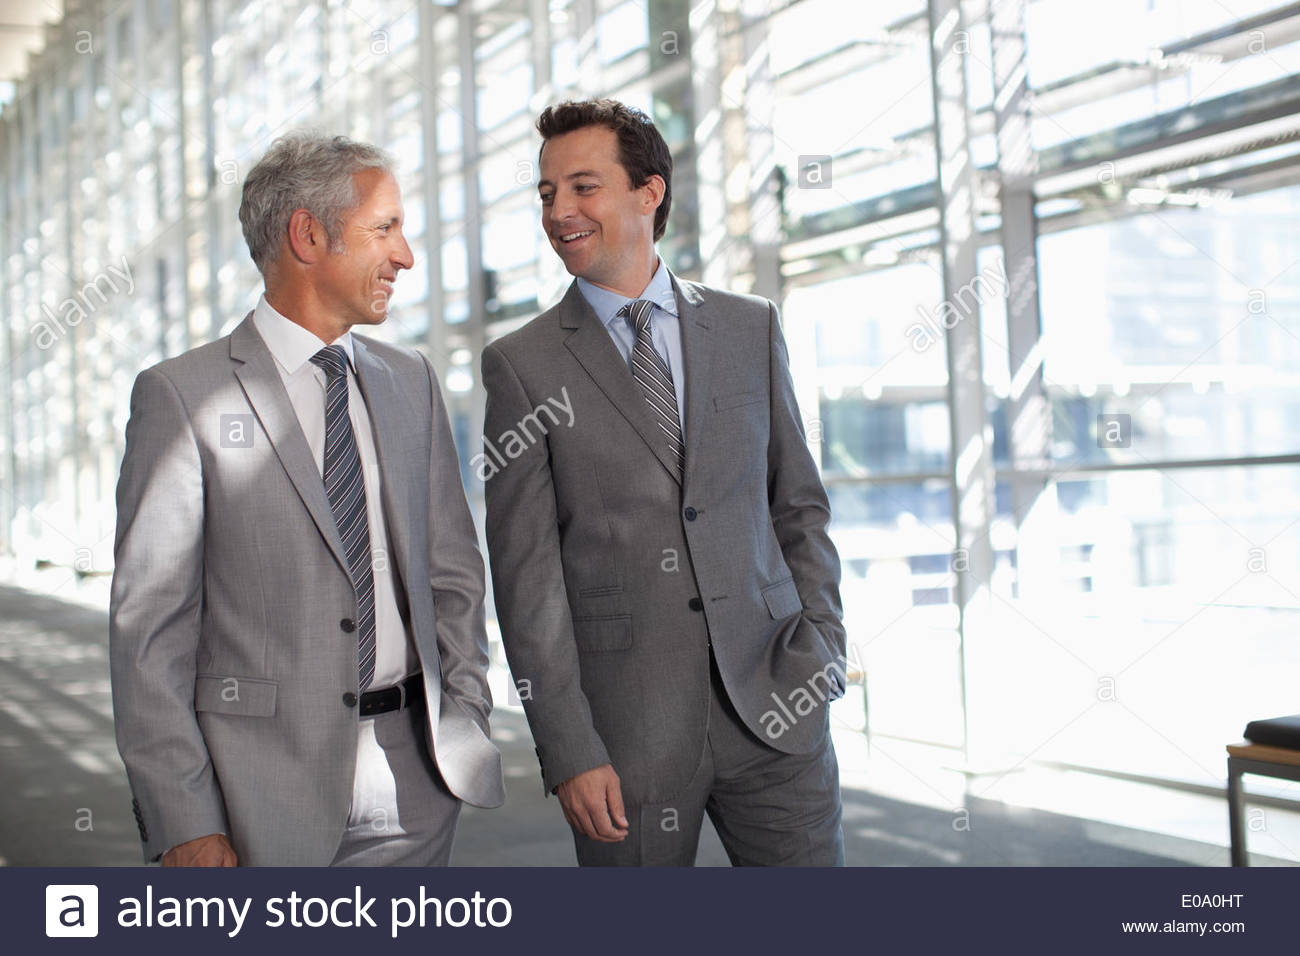 Two businessmen talking in modern lobby - Stock Image